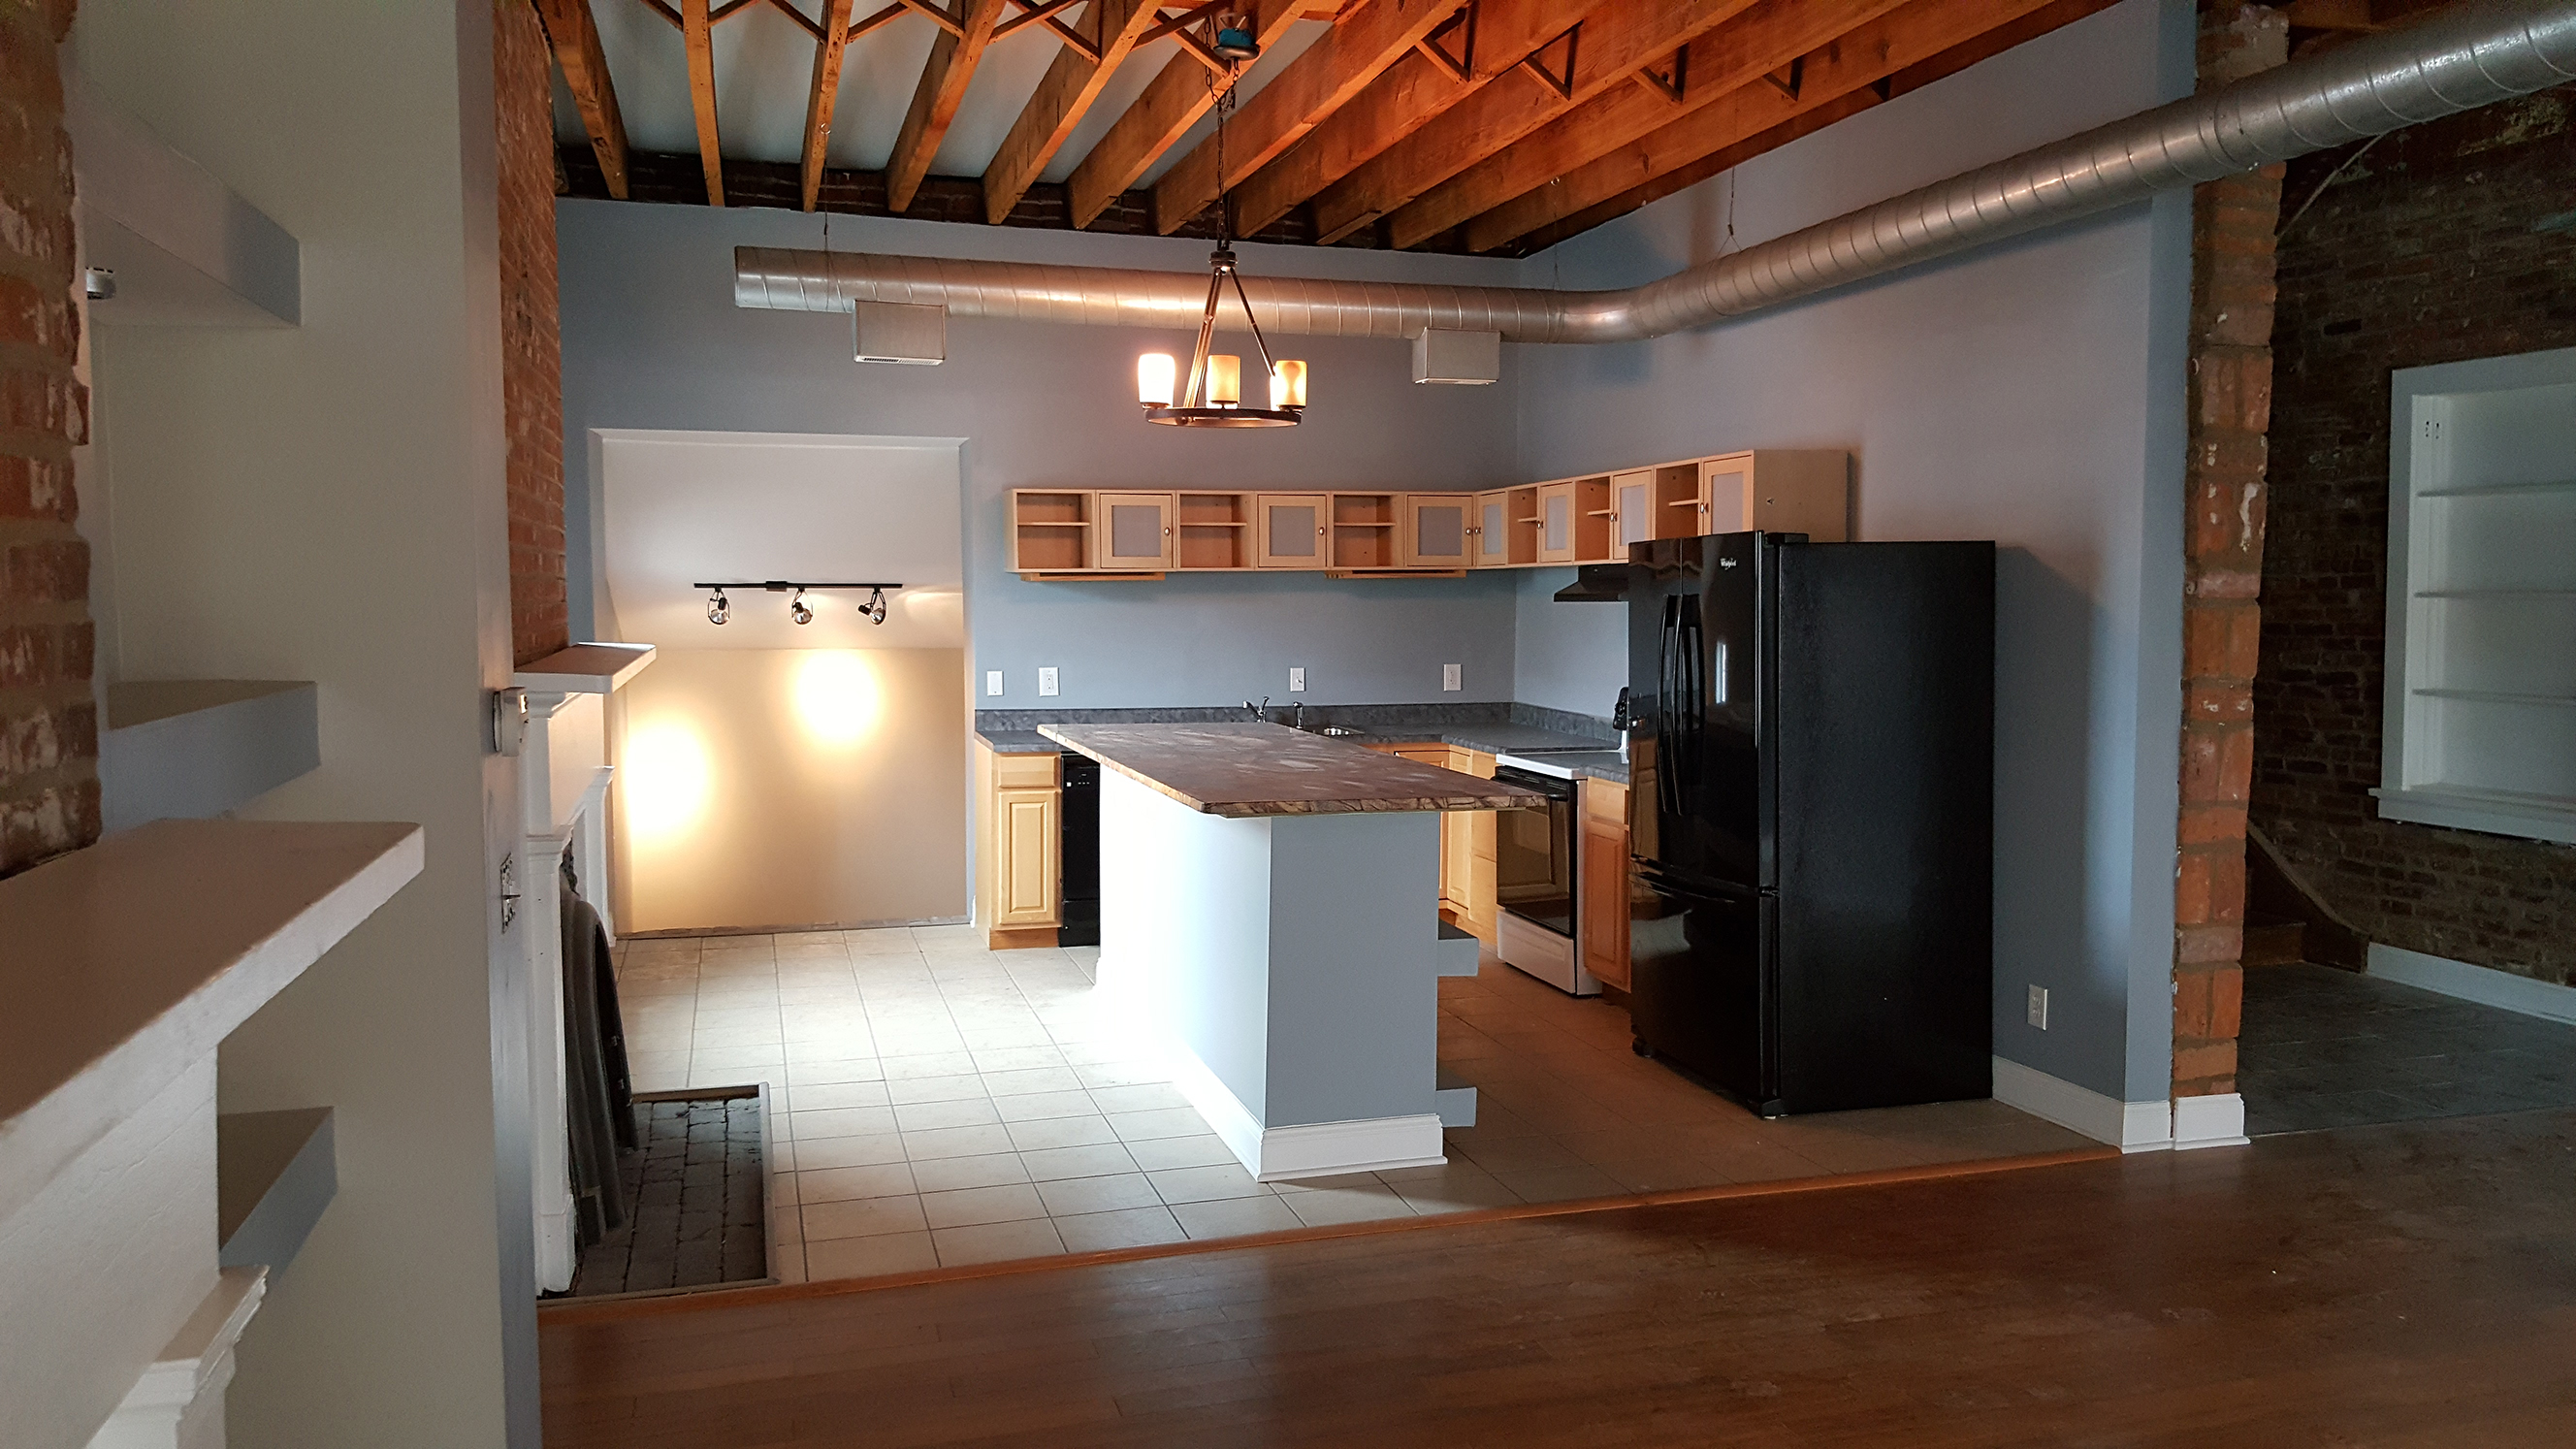 Kitchen Remodeling | Remodel STL- St Louis Construction - Results ...